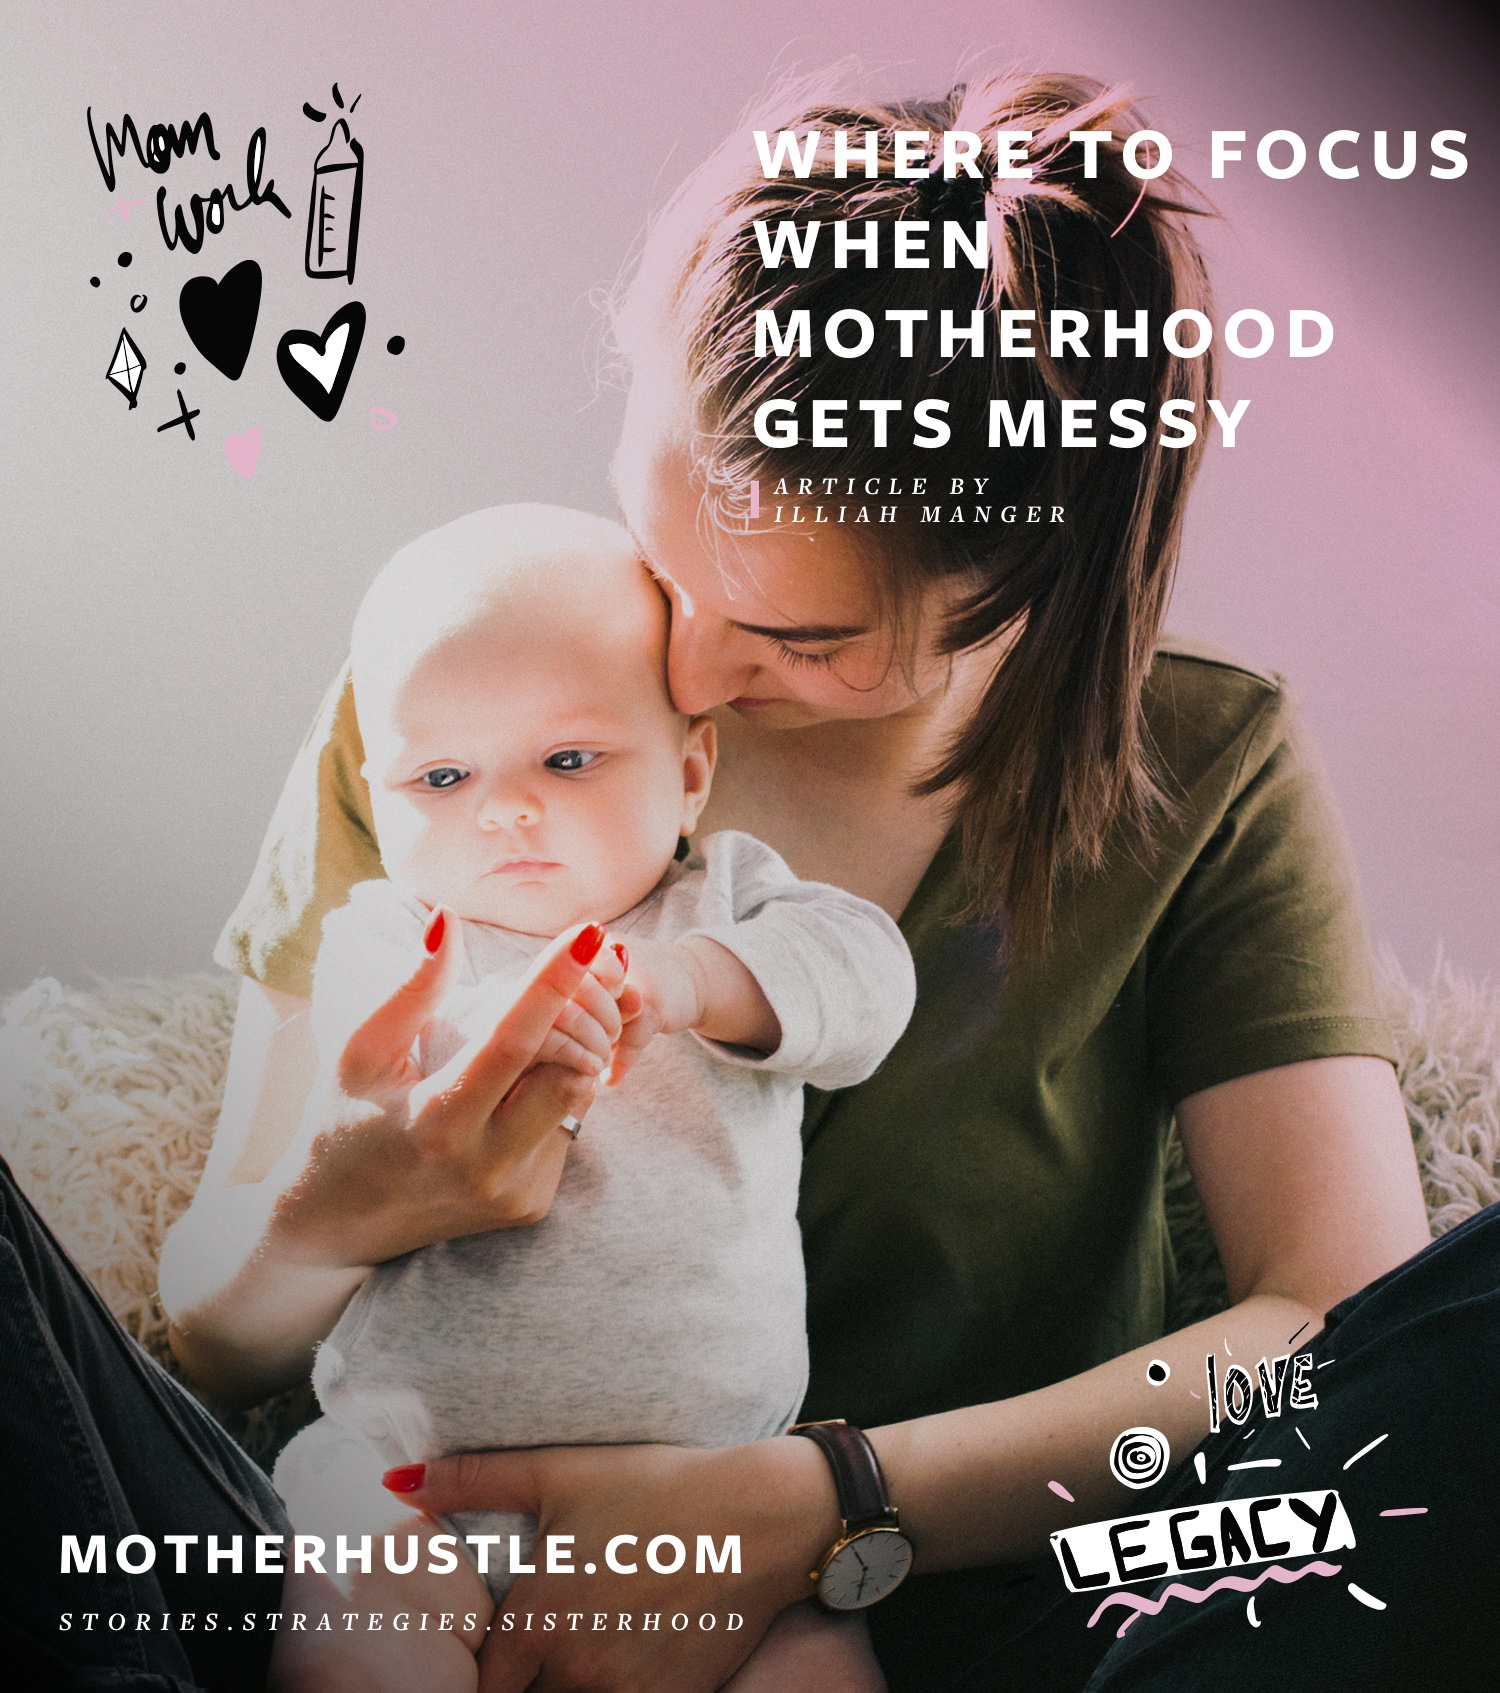 Where to Focus When Motherhood Gets Messy - by Illiah Manger for MotherHustle